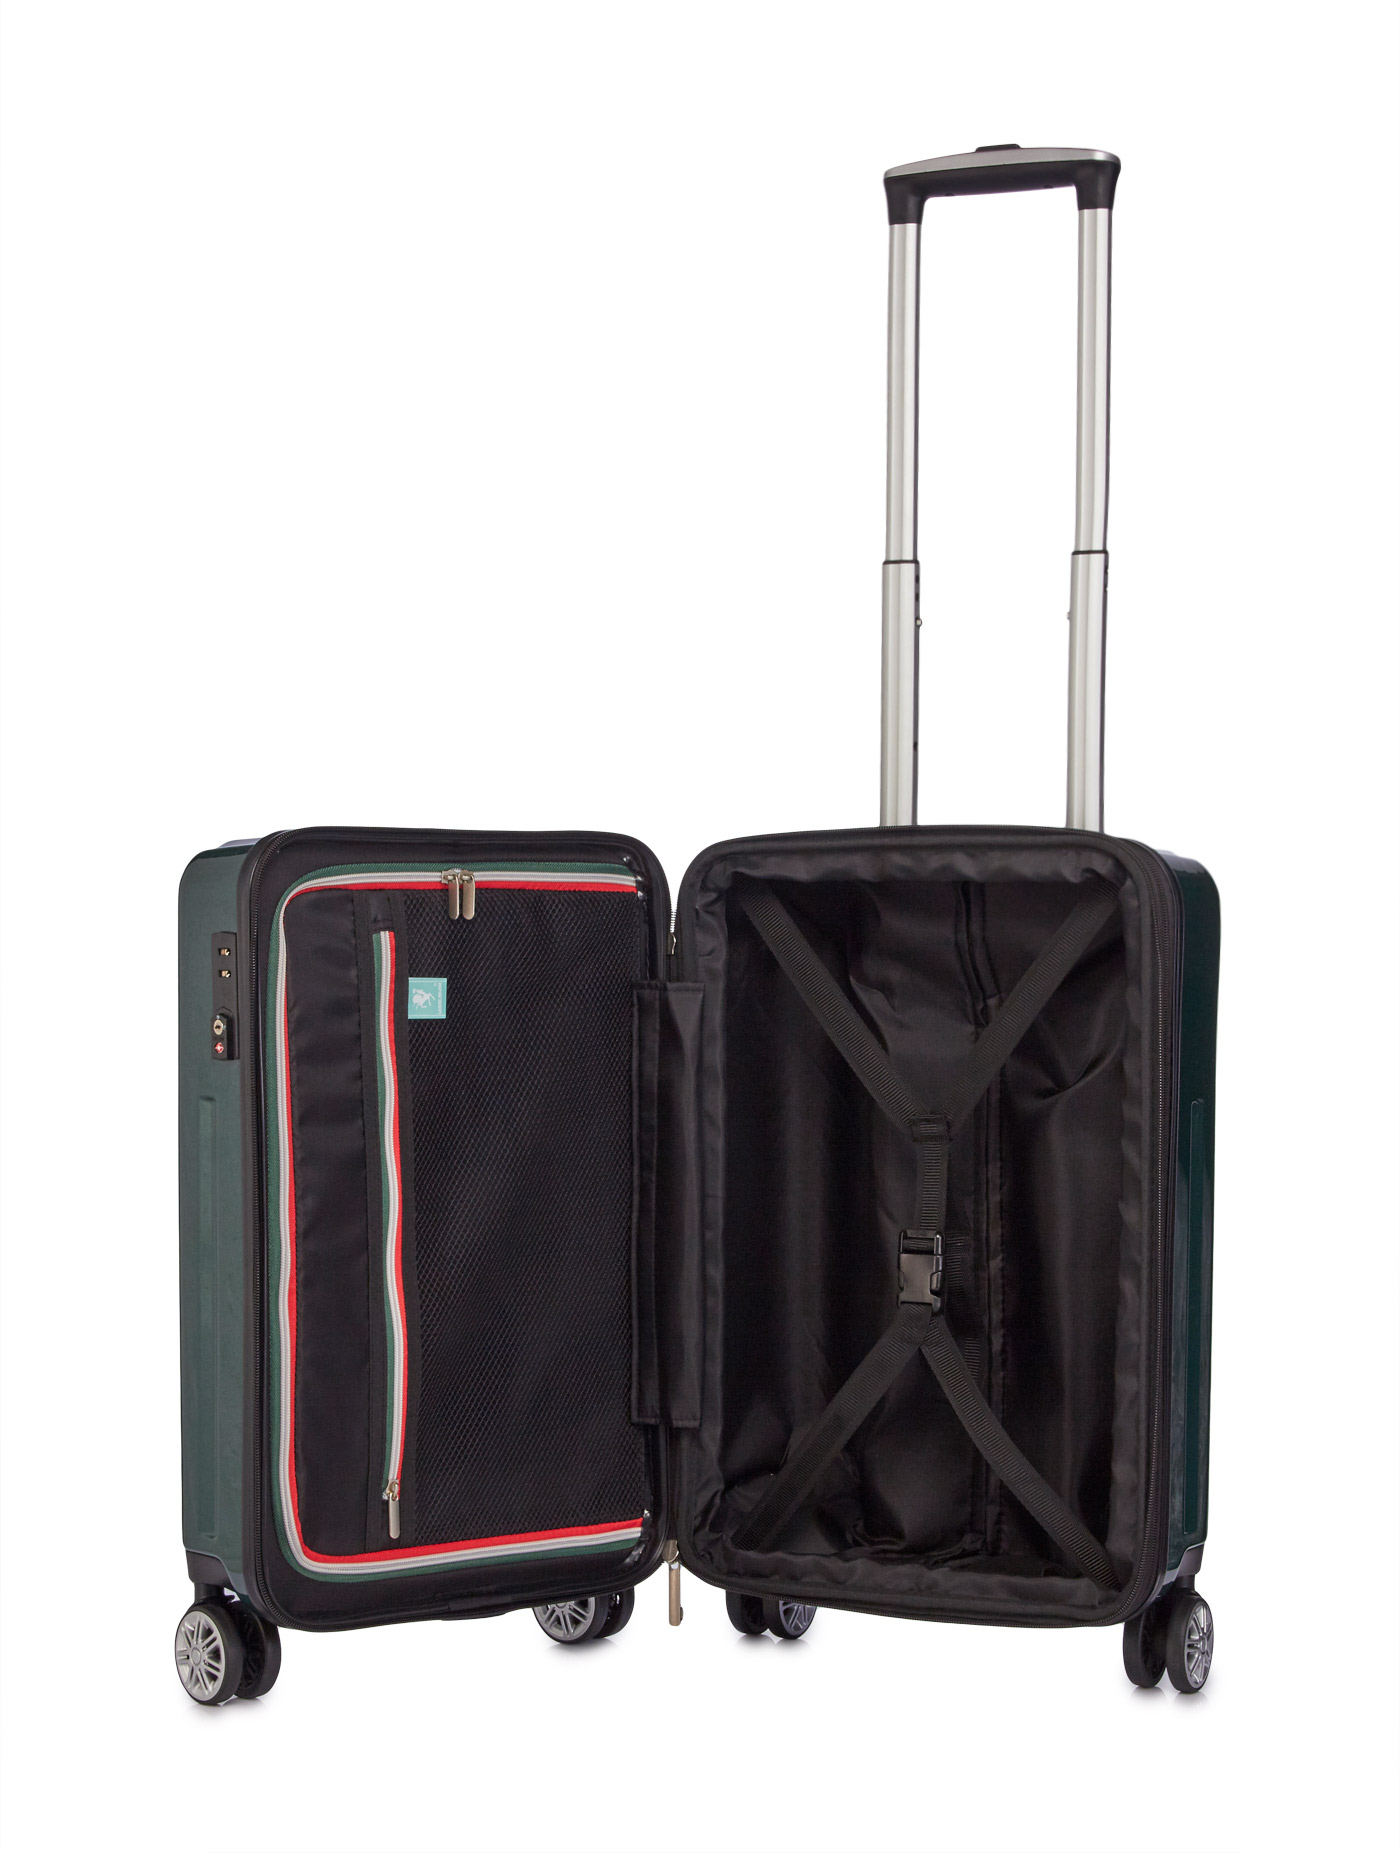 Legend Walker Hard Luggage 5102 49 Size 22 Inches Gree Central Online